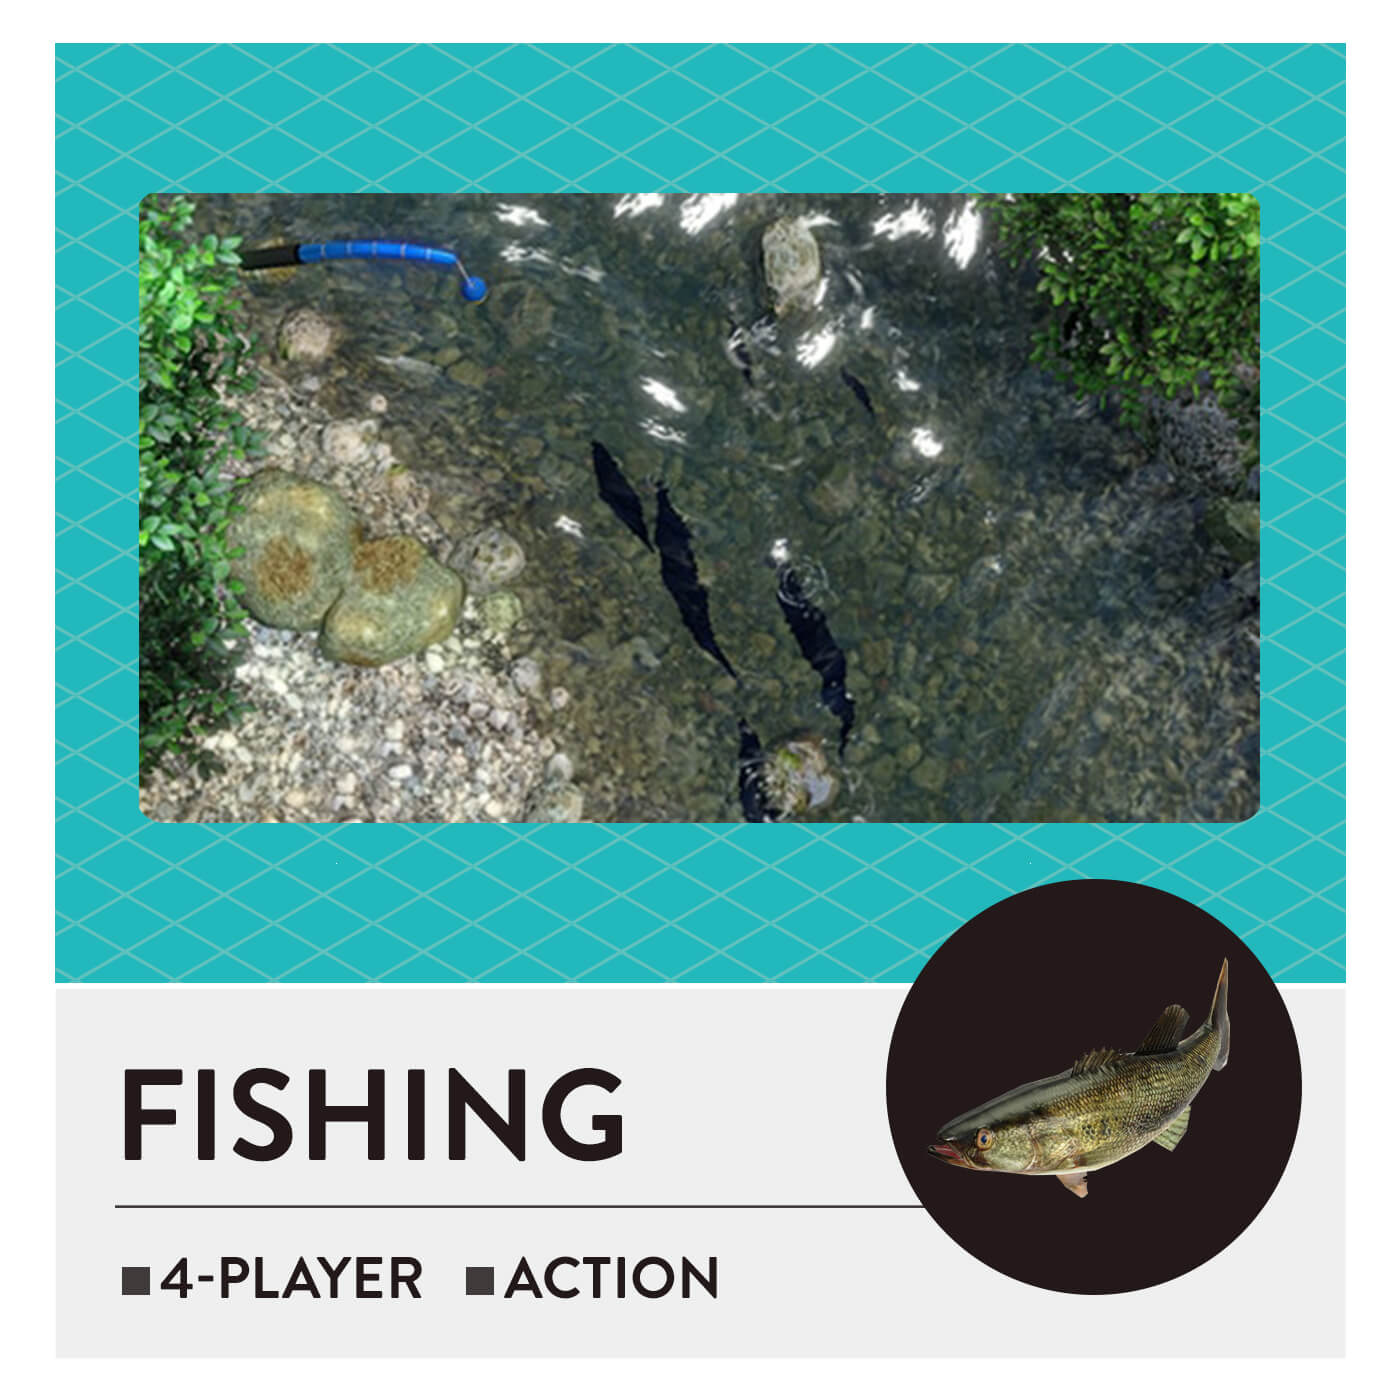 51 Worldwide Games - Fishing